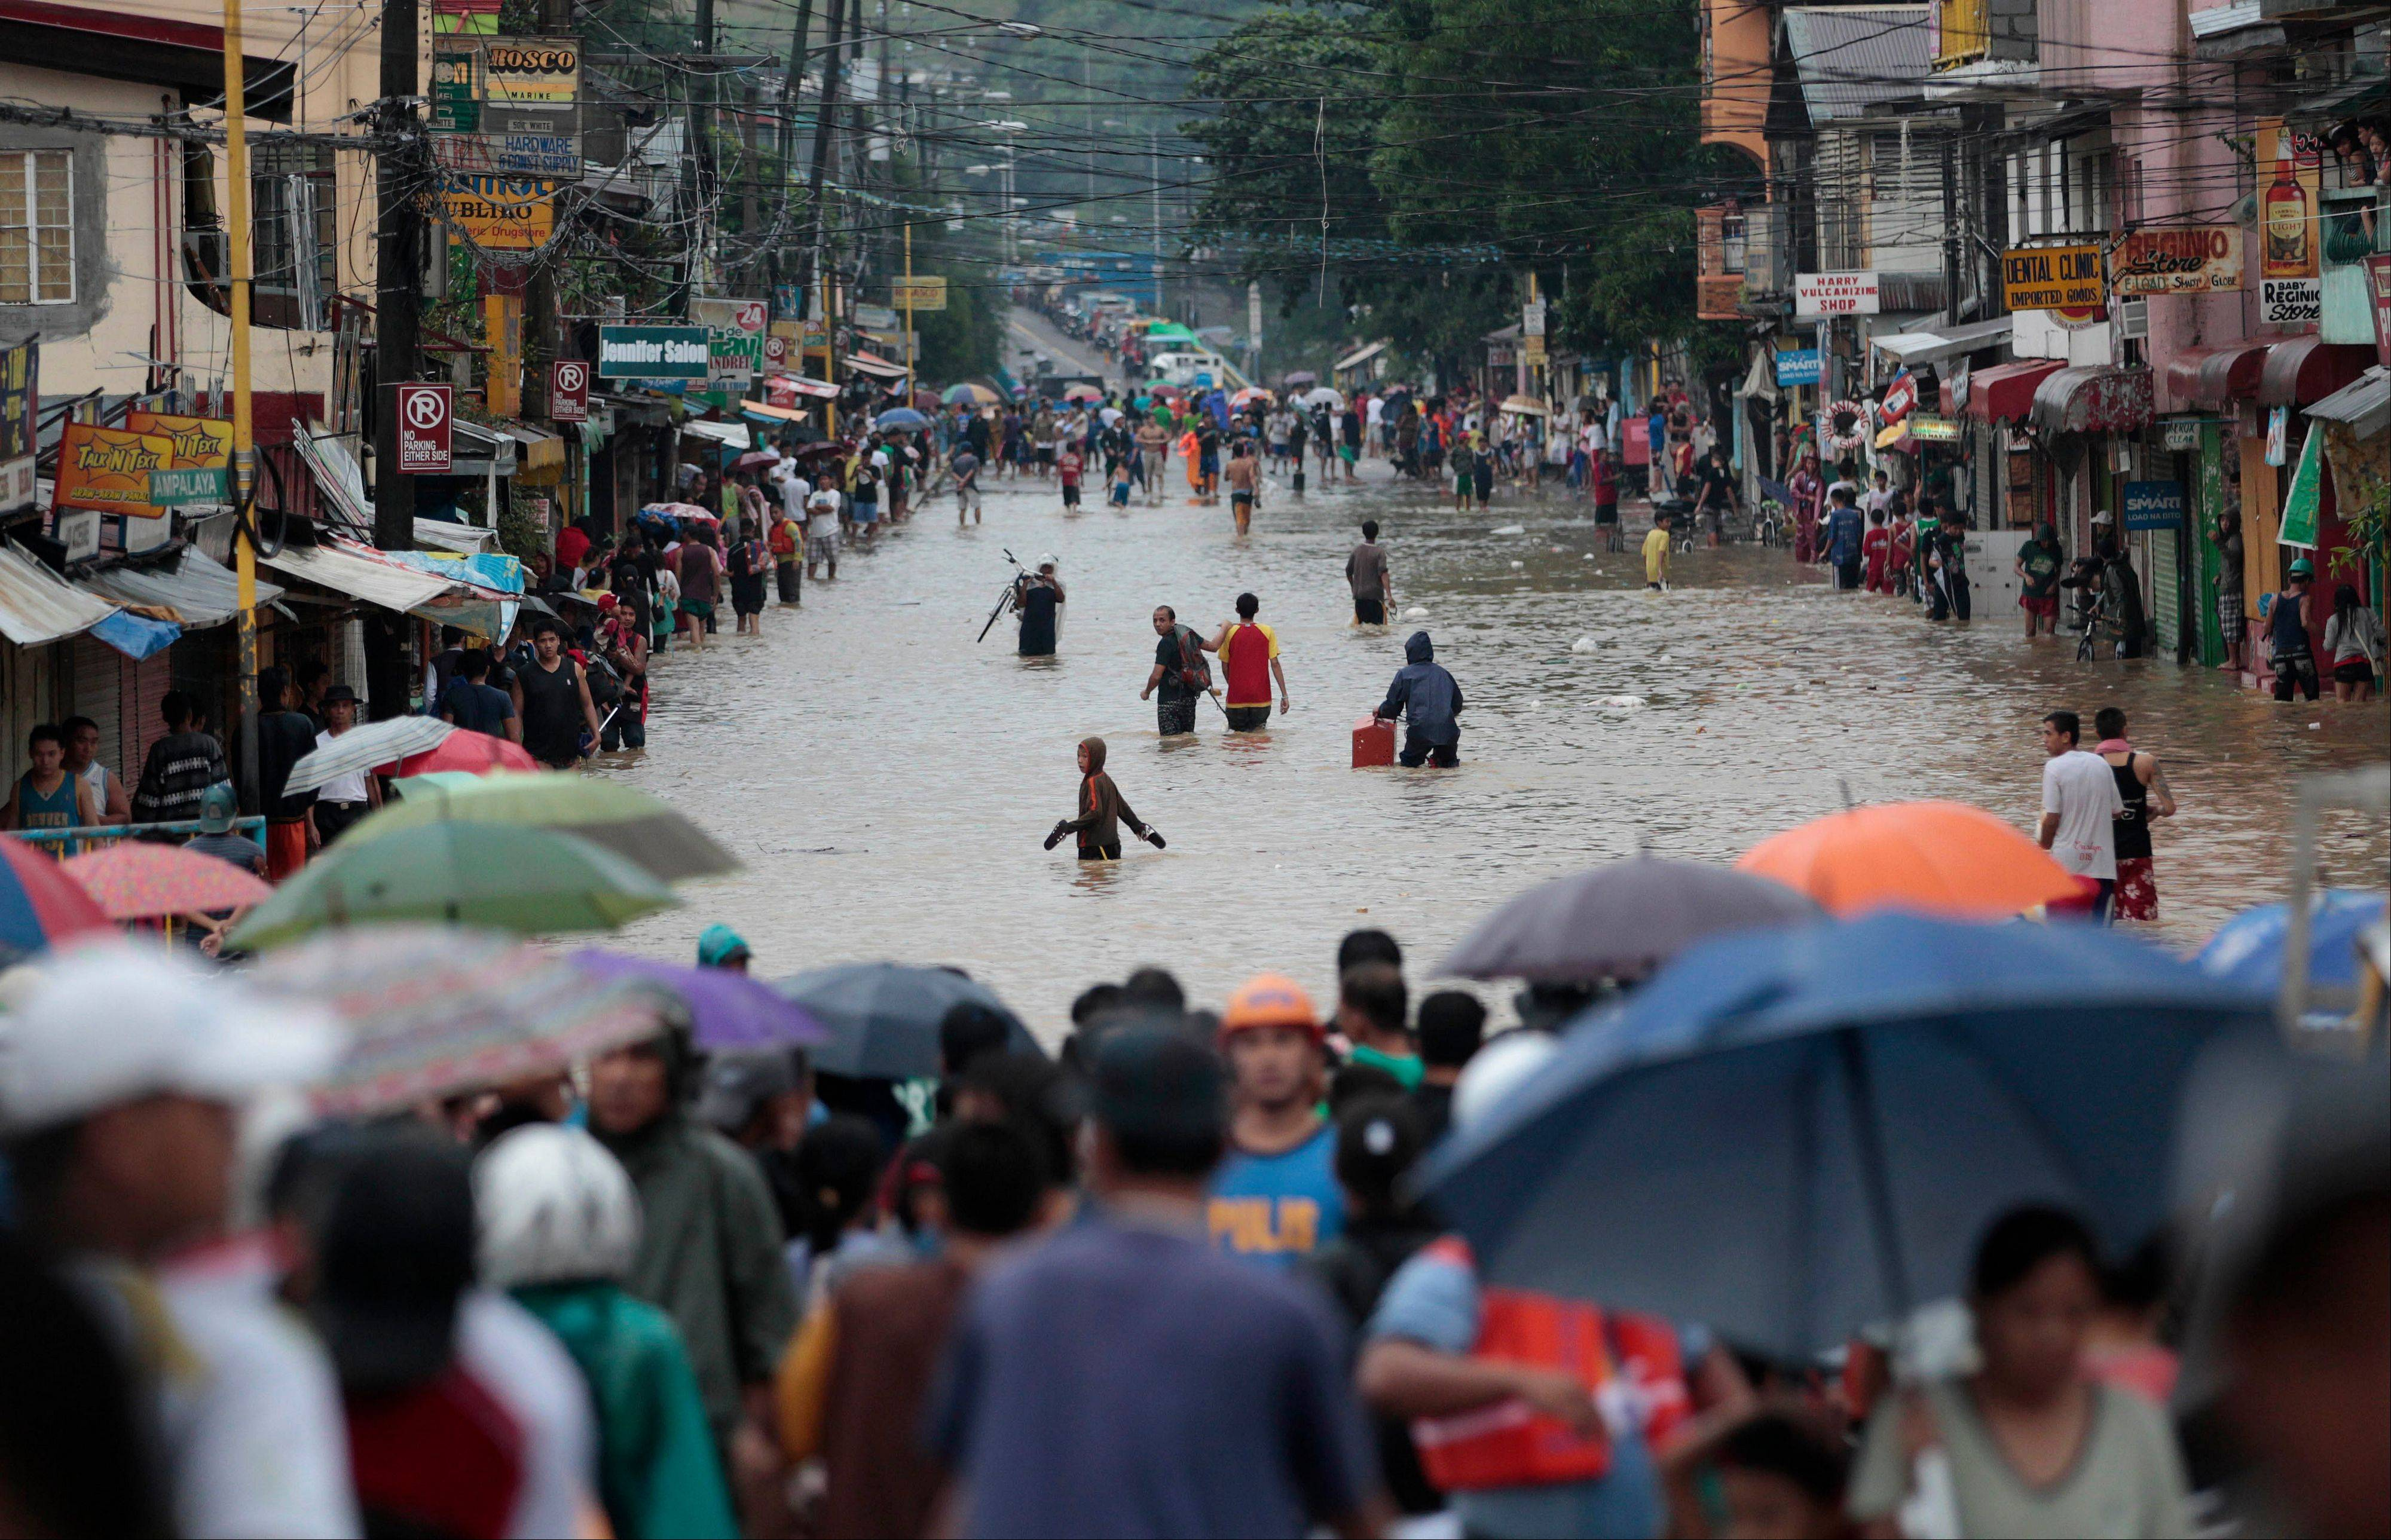 A crowd watches as residents cross a flooded street to evacuate to higher grounds in Marikina city, east of Manila, Philippines on Tuesday, Aug. 20, 2013.